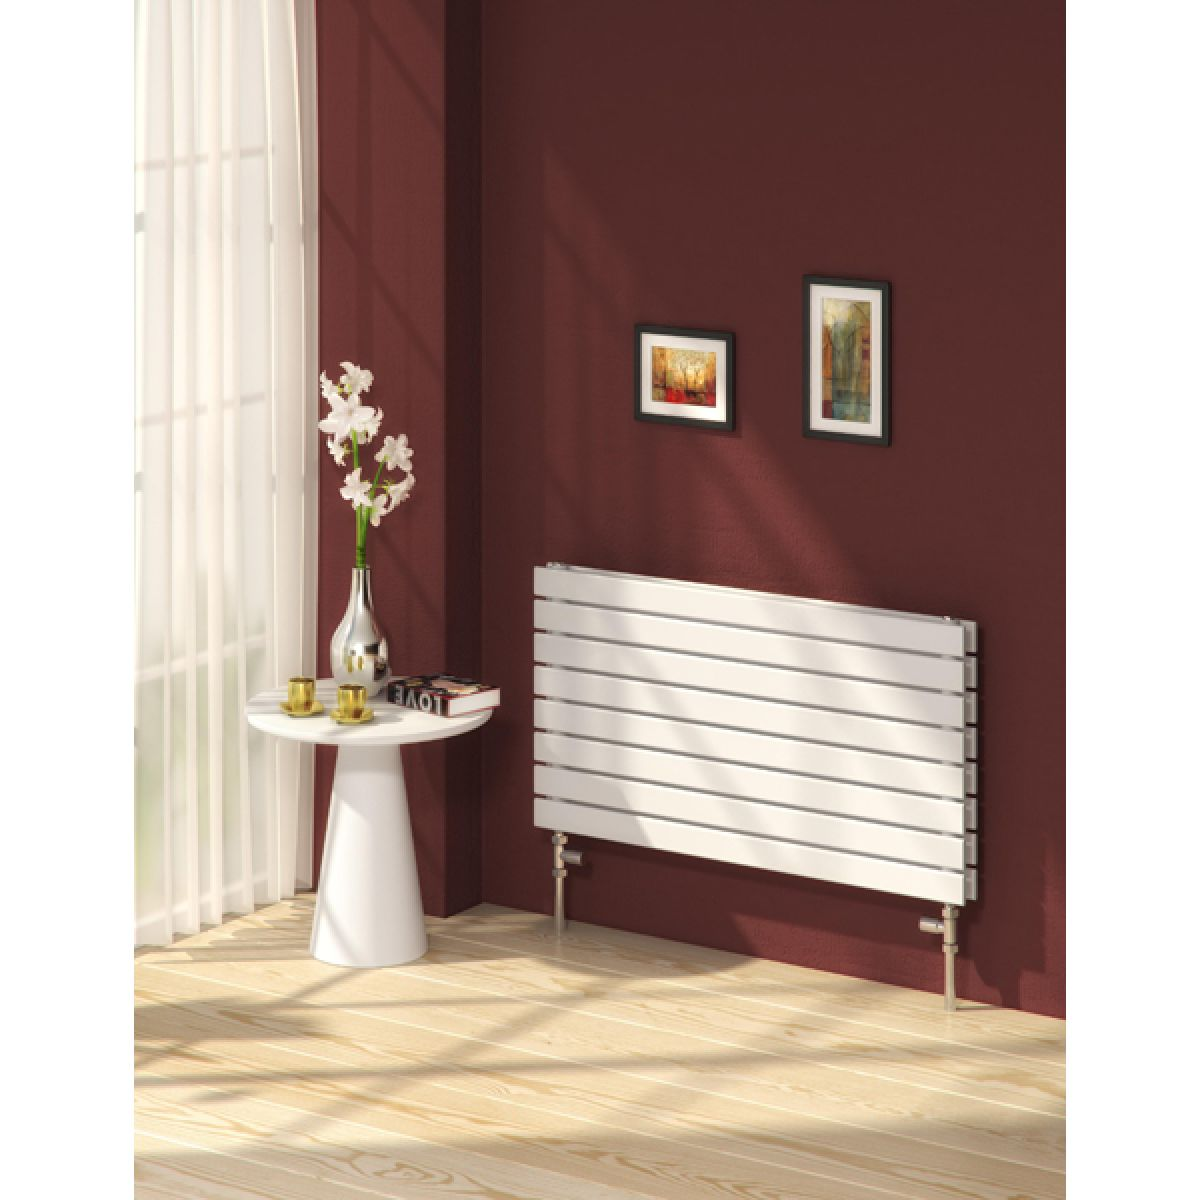 Reina Rione Double Electric Horizontal Radiator 550 x 800mm in White